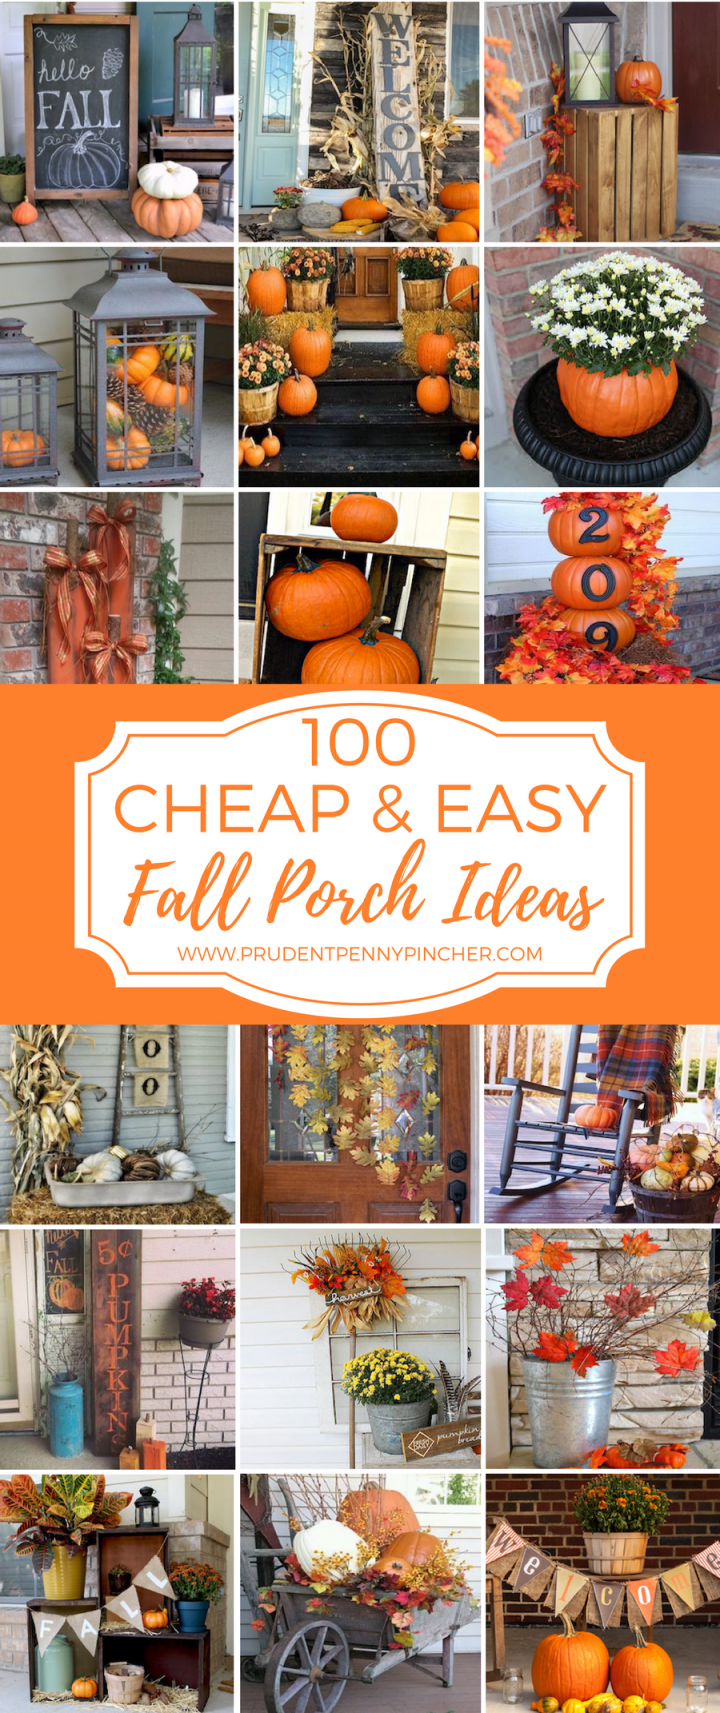 Adorable diy fall decor ideas